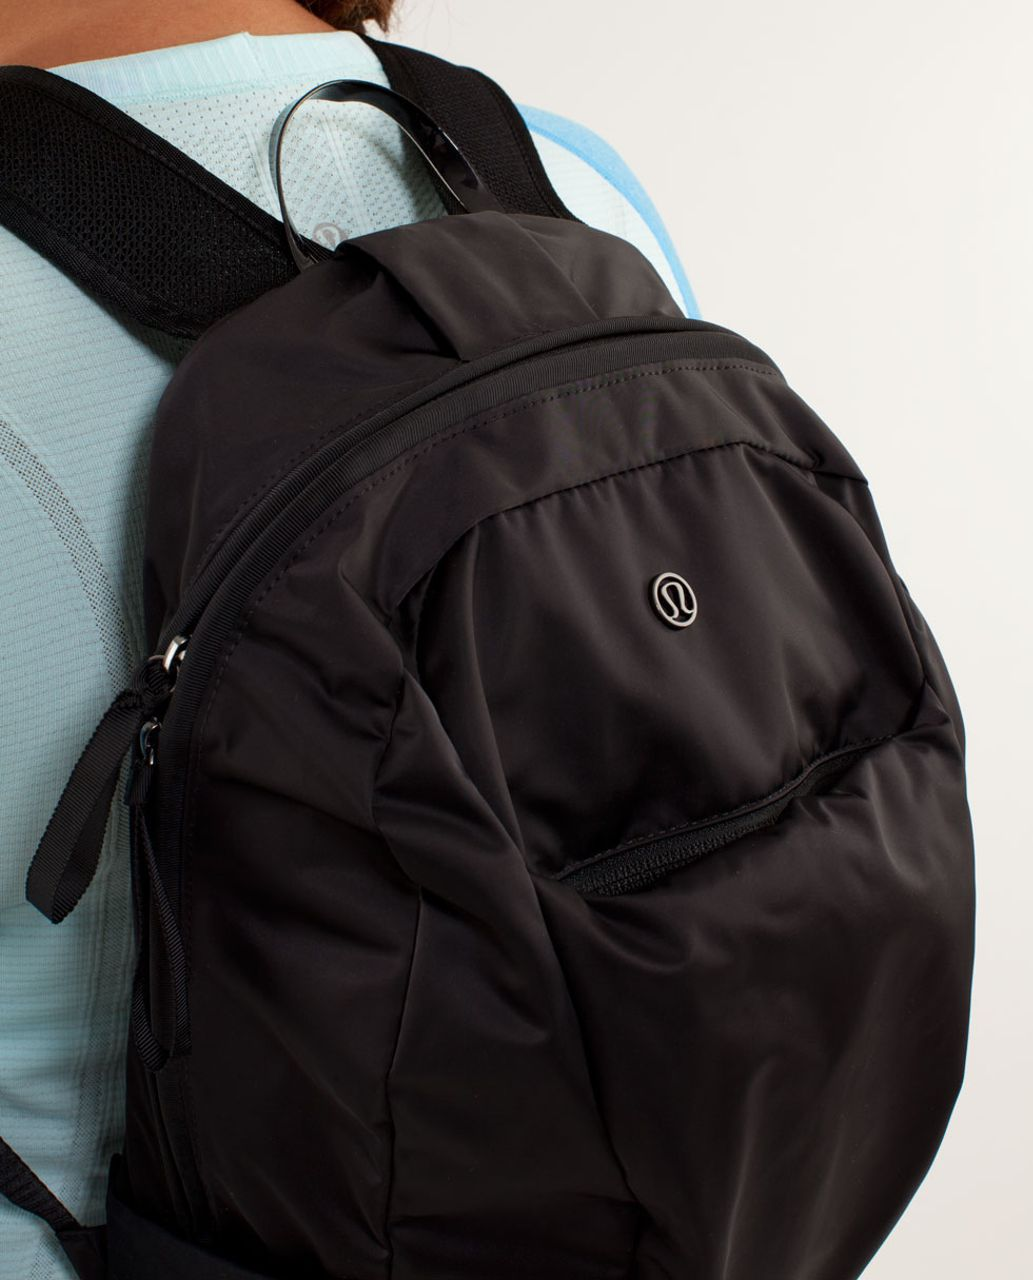 Lululemon Run From Work Backpack II - Black